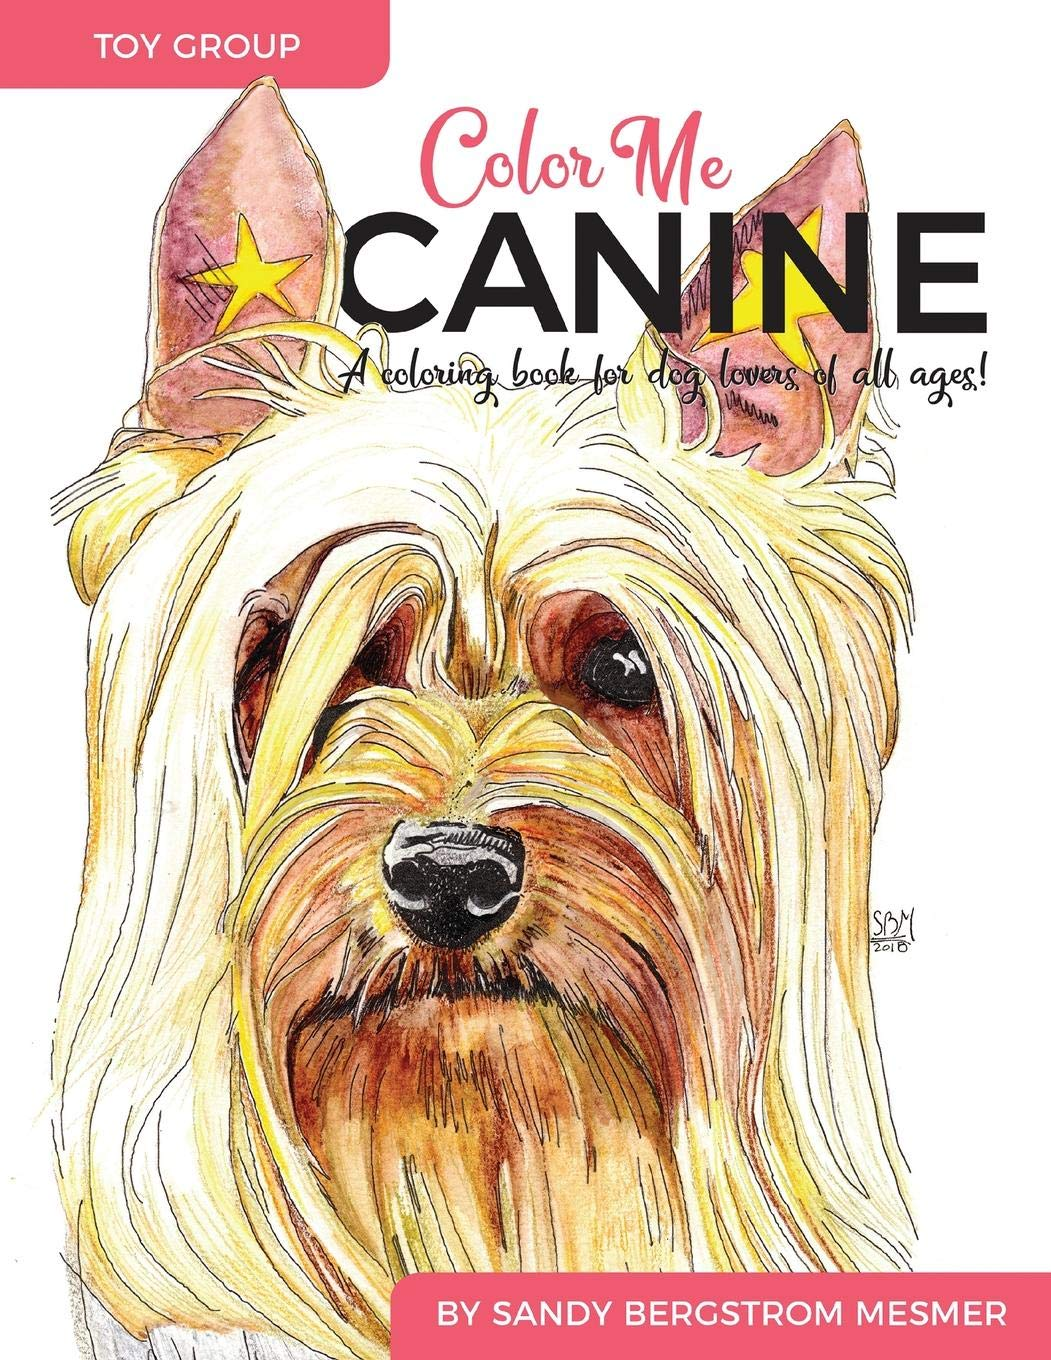 Color Me Canine Toy Group product image